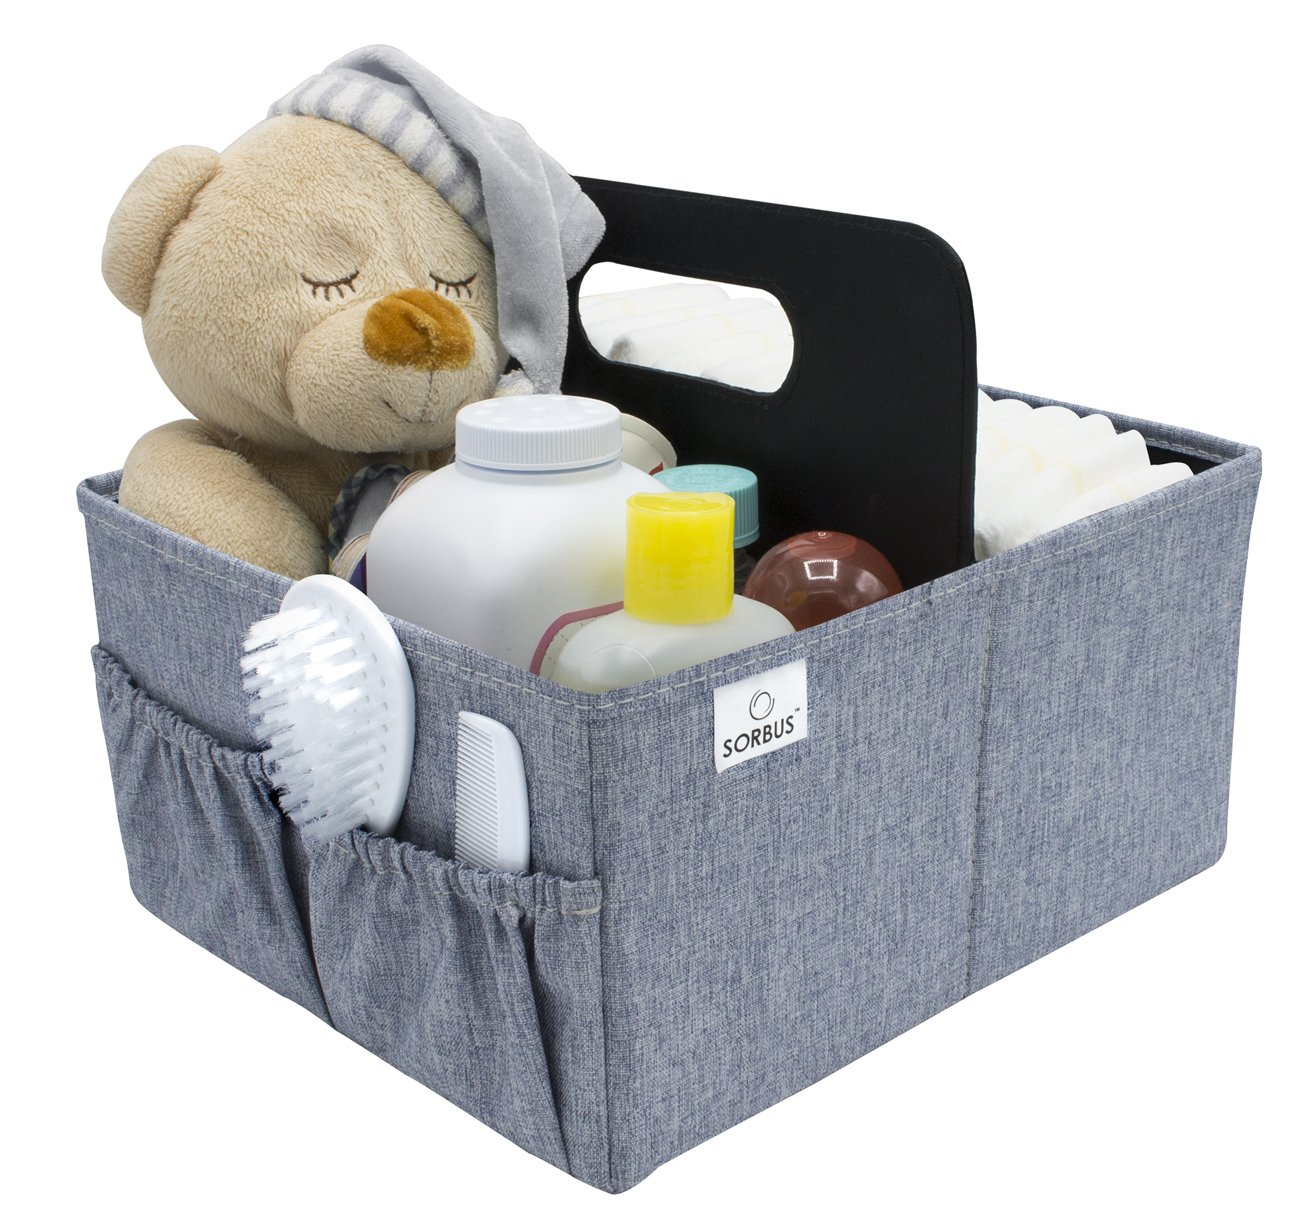 Cheap Baby Organizer Basket Find Baby Organizer Basket Deals On